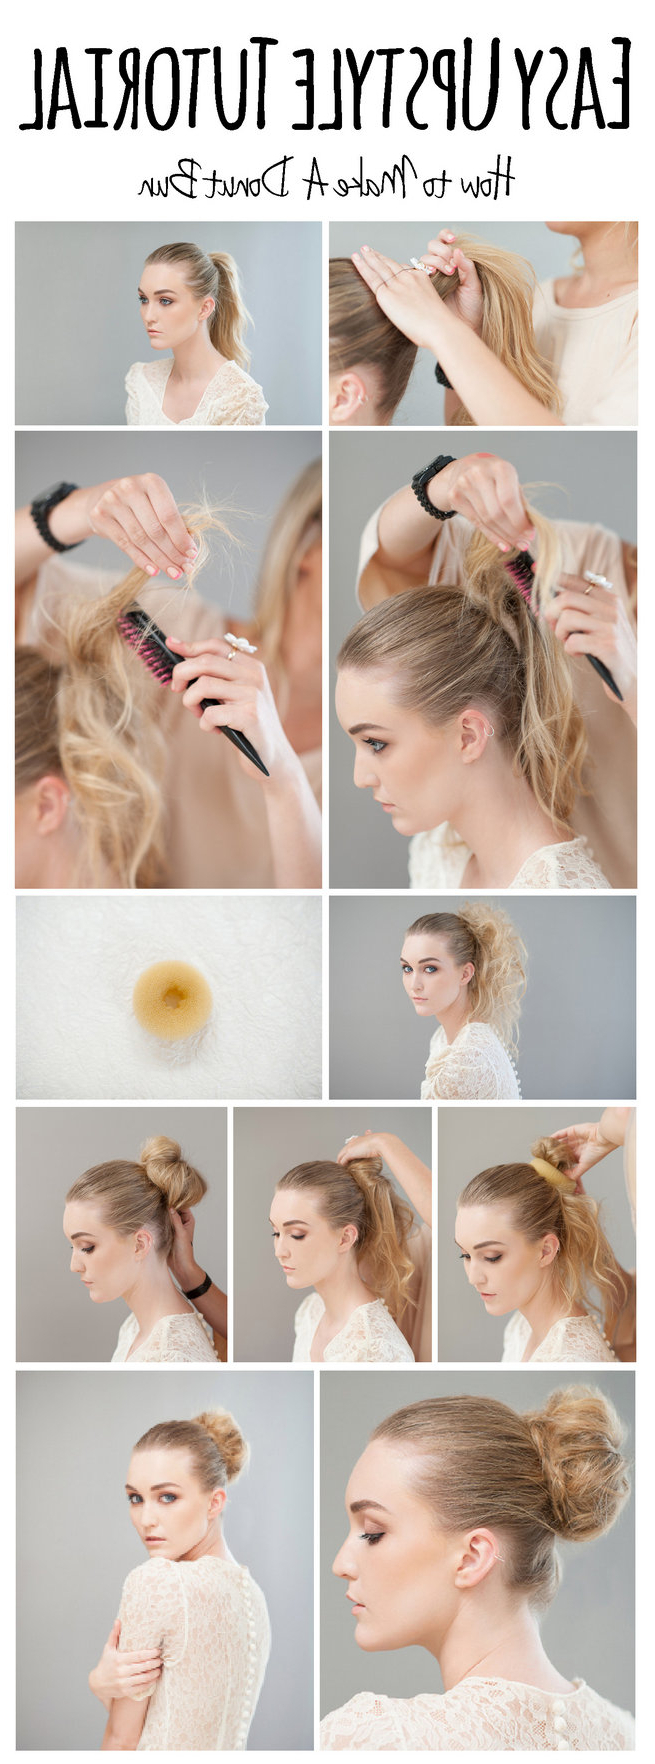 16 Easy Bun Hairstyles To Try (tending In 2019) Within Most Recent Double Mini Buns Updo Hairstyles (View 13 of 20)